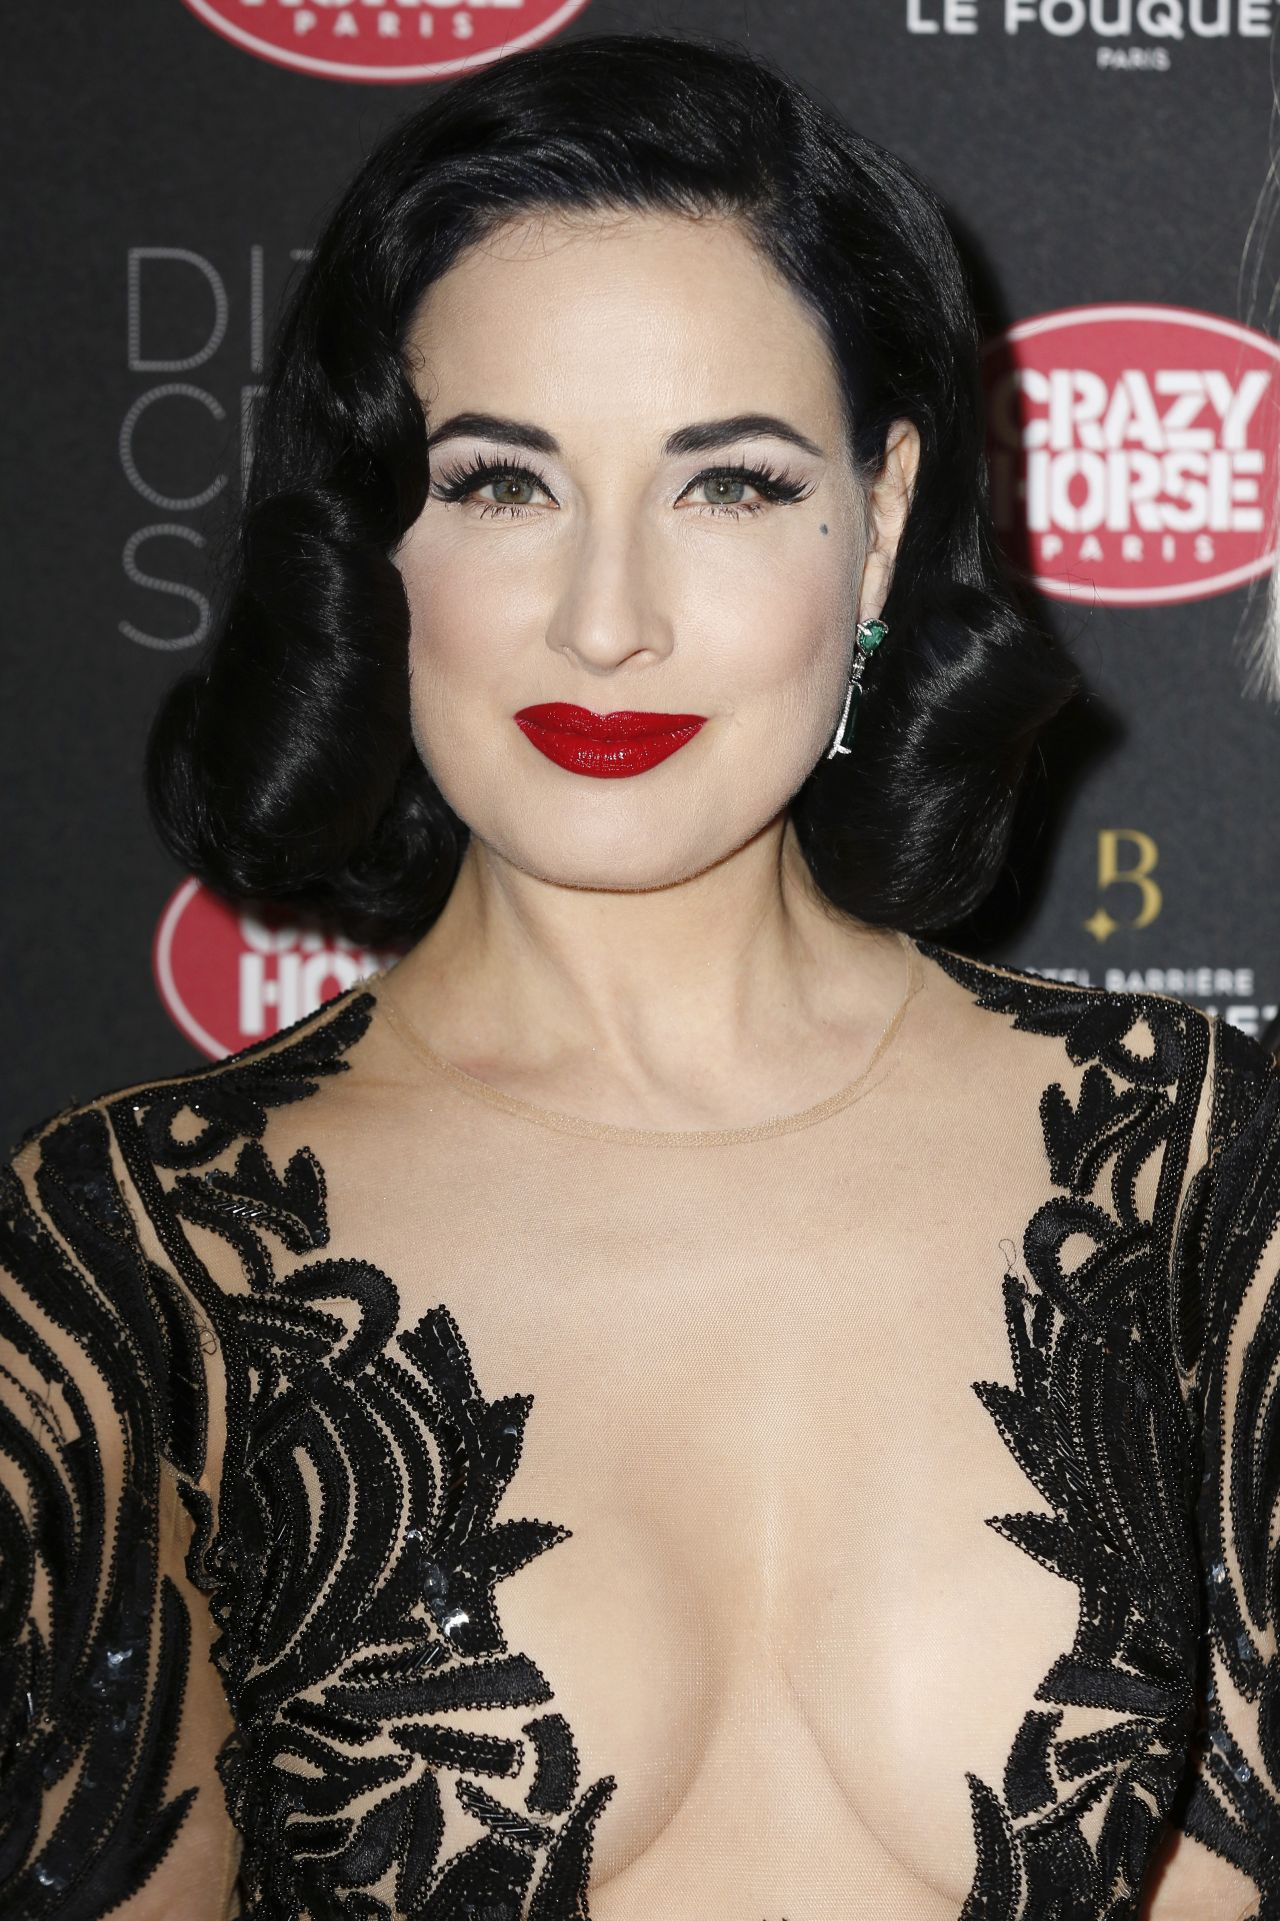 Nude Pictures Of Dita Von Teese 48